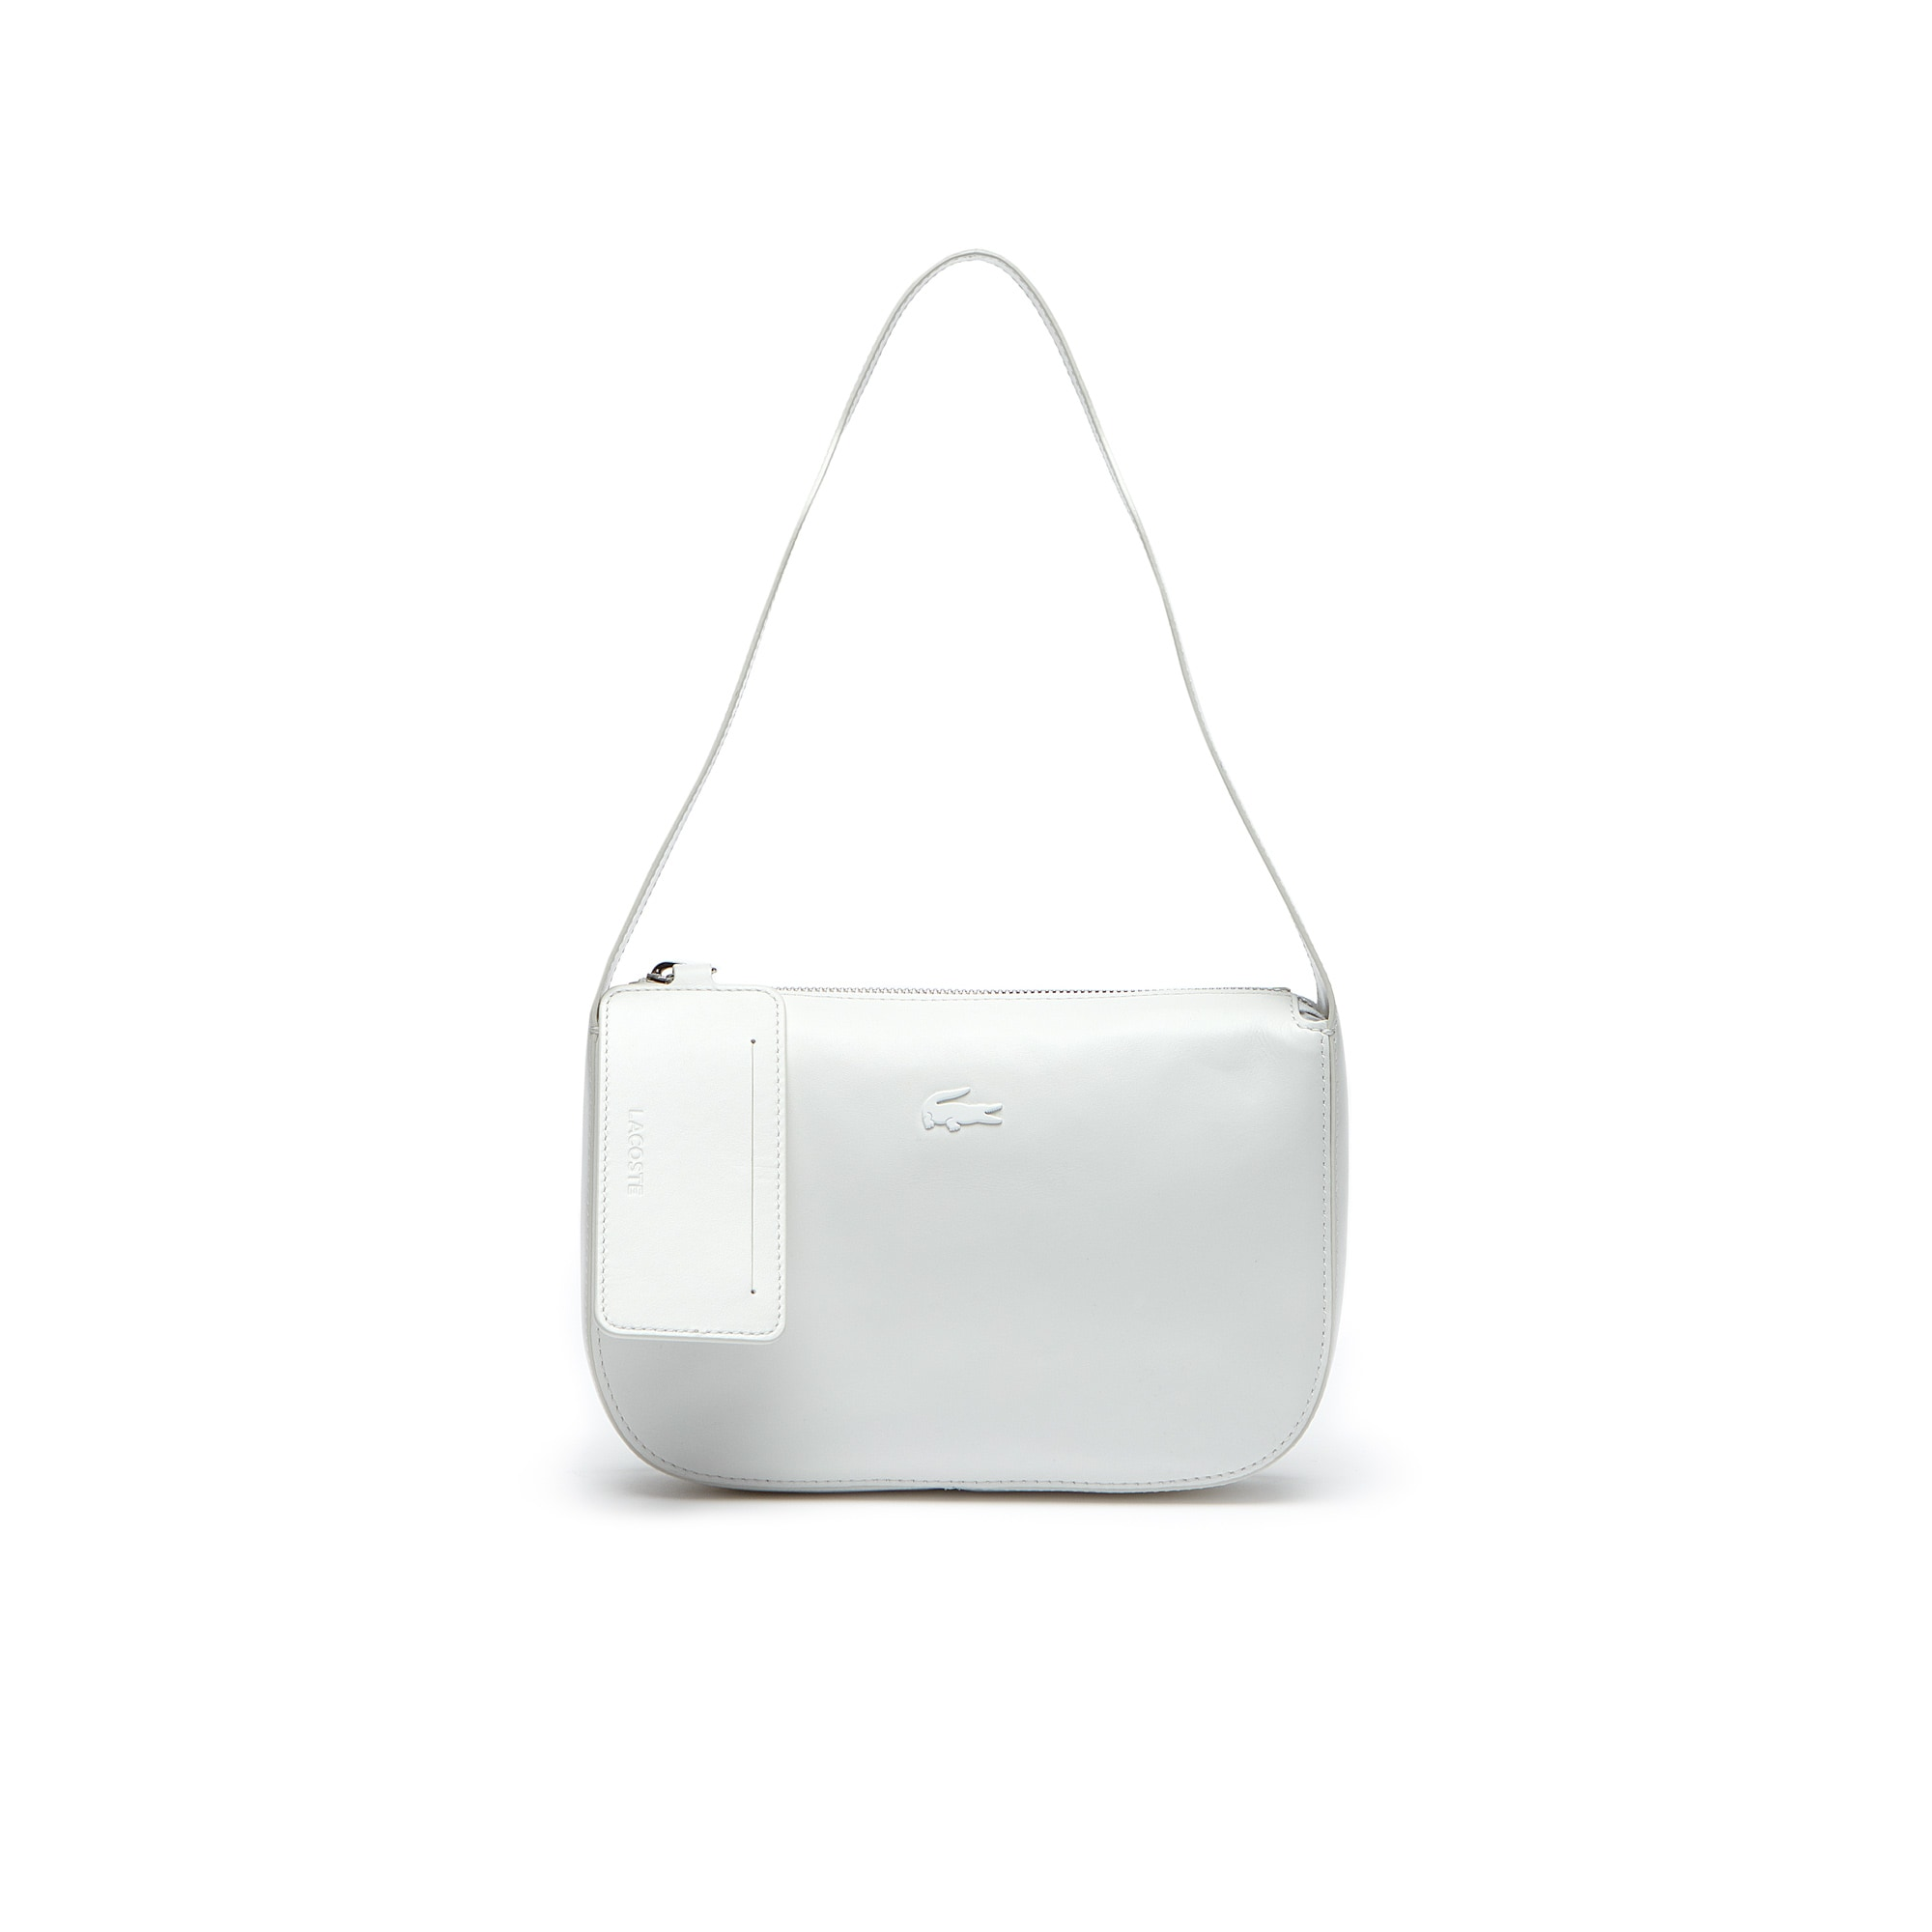 Mini sac hobo Purity en cuir souple monochrome